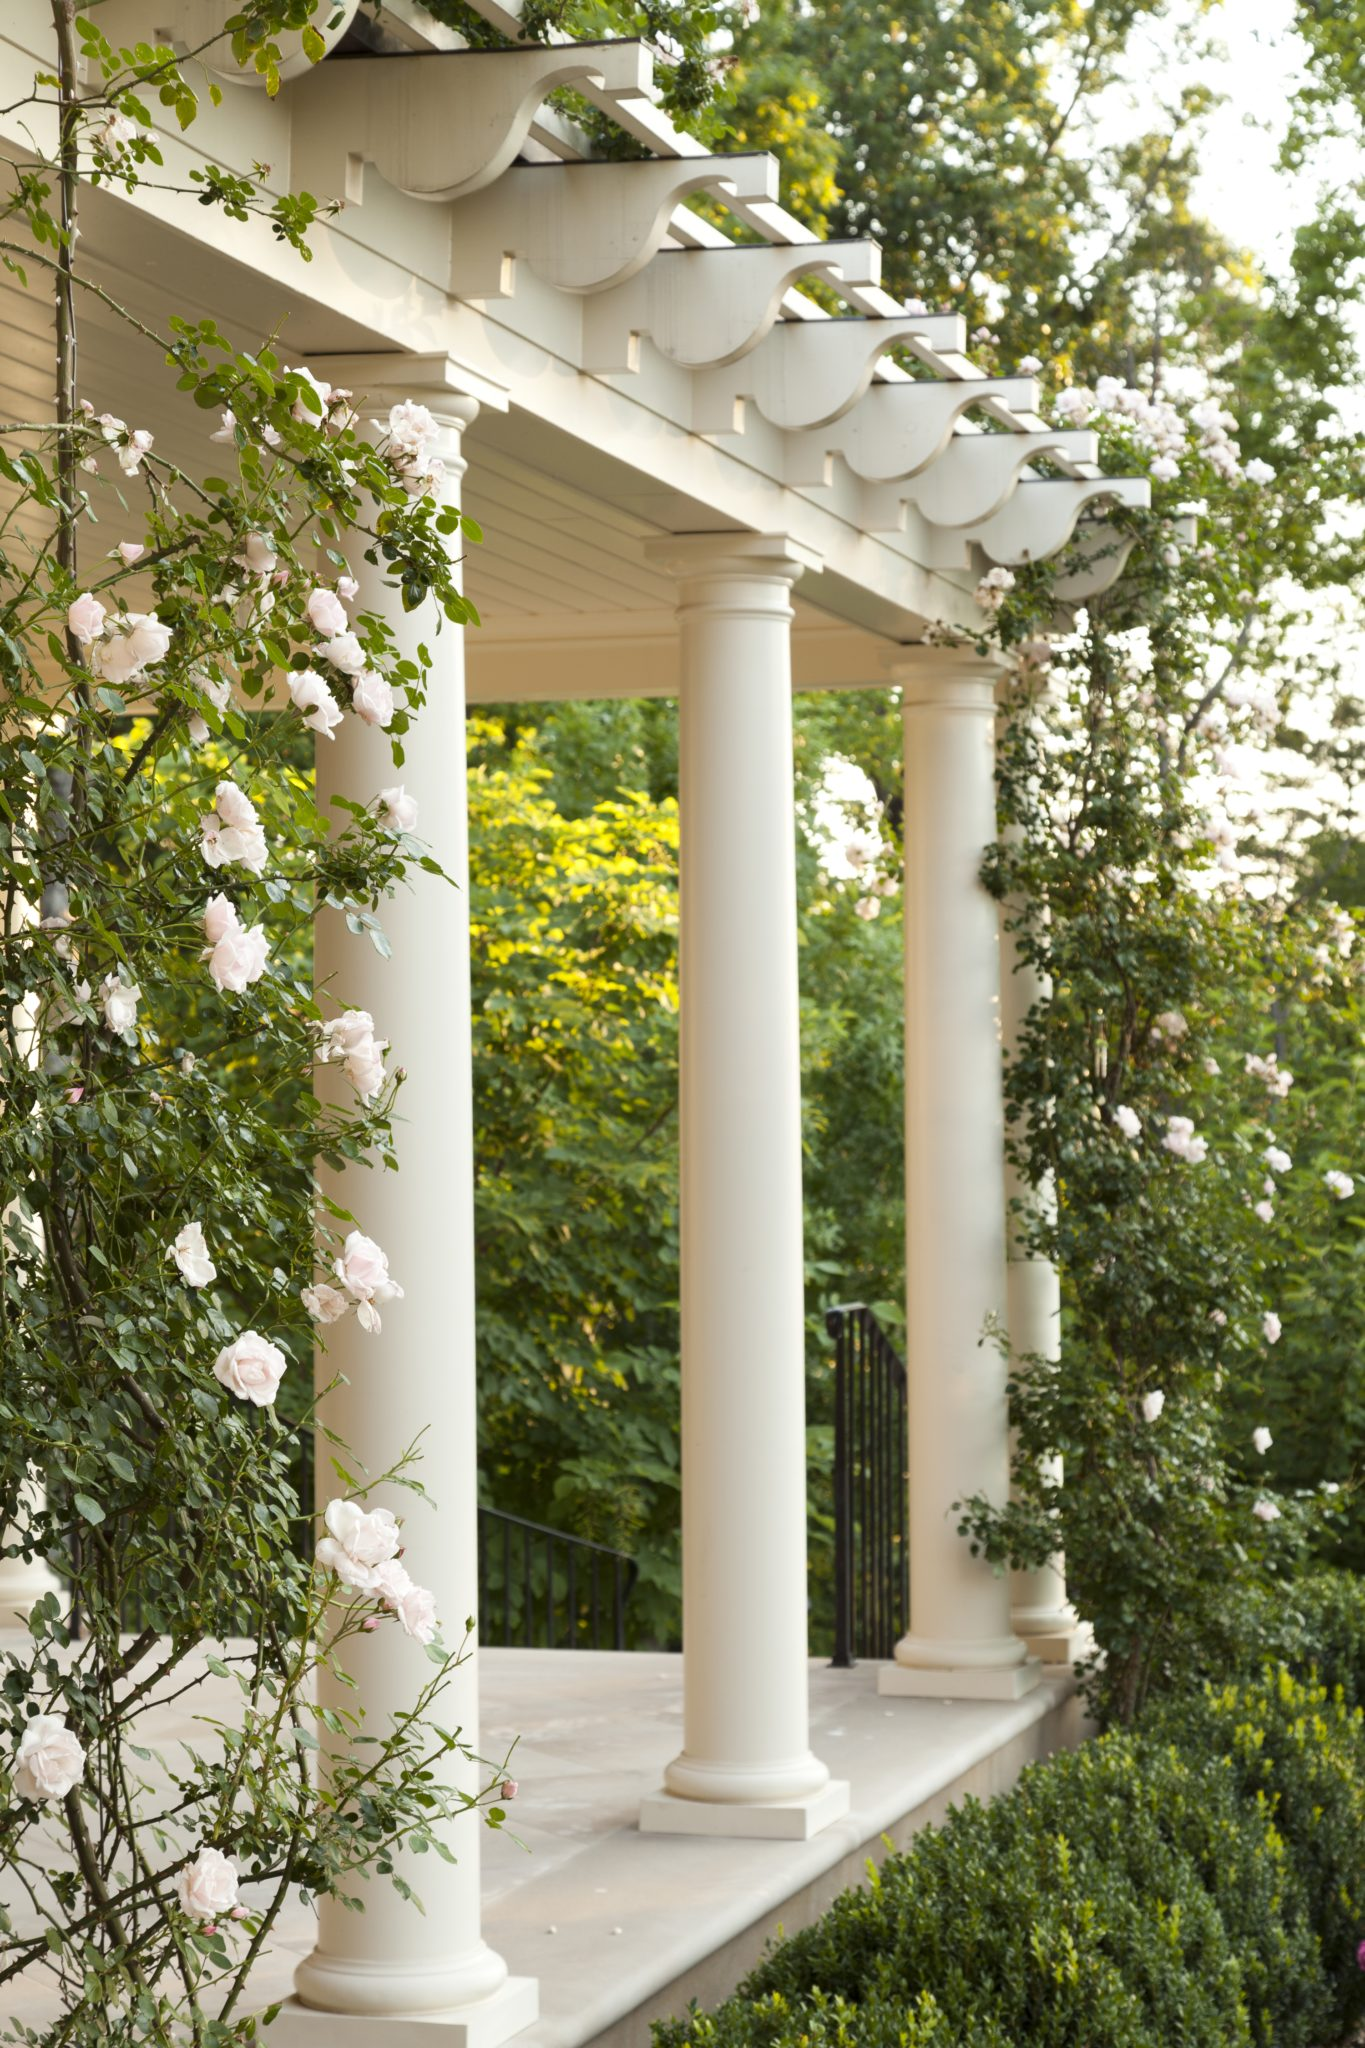 Rambling Roses on Pergola in a garden by Howard Design Studio. by Howard Design Studio